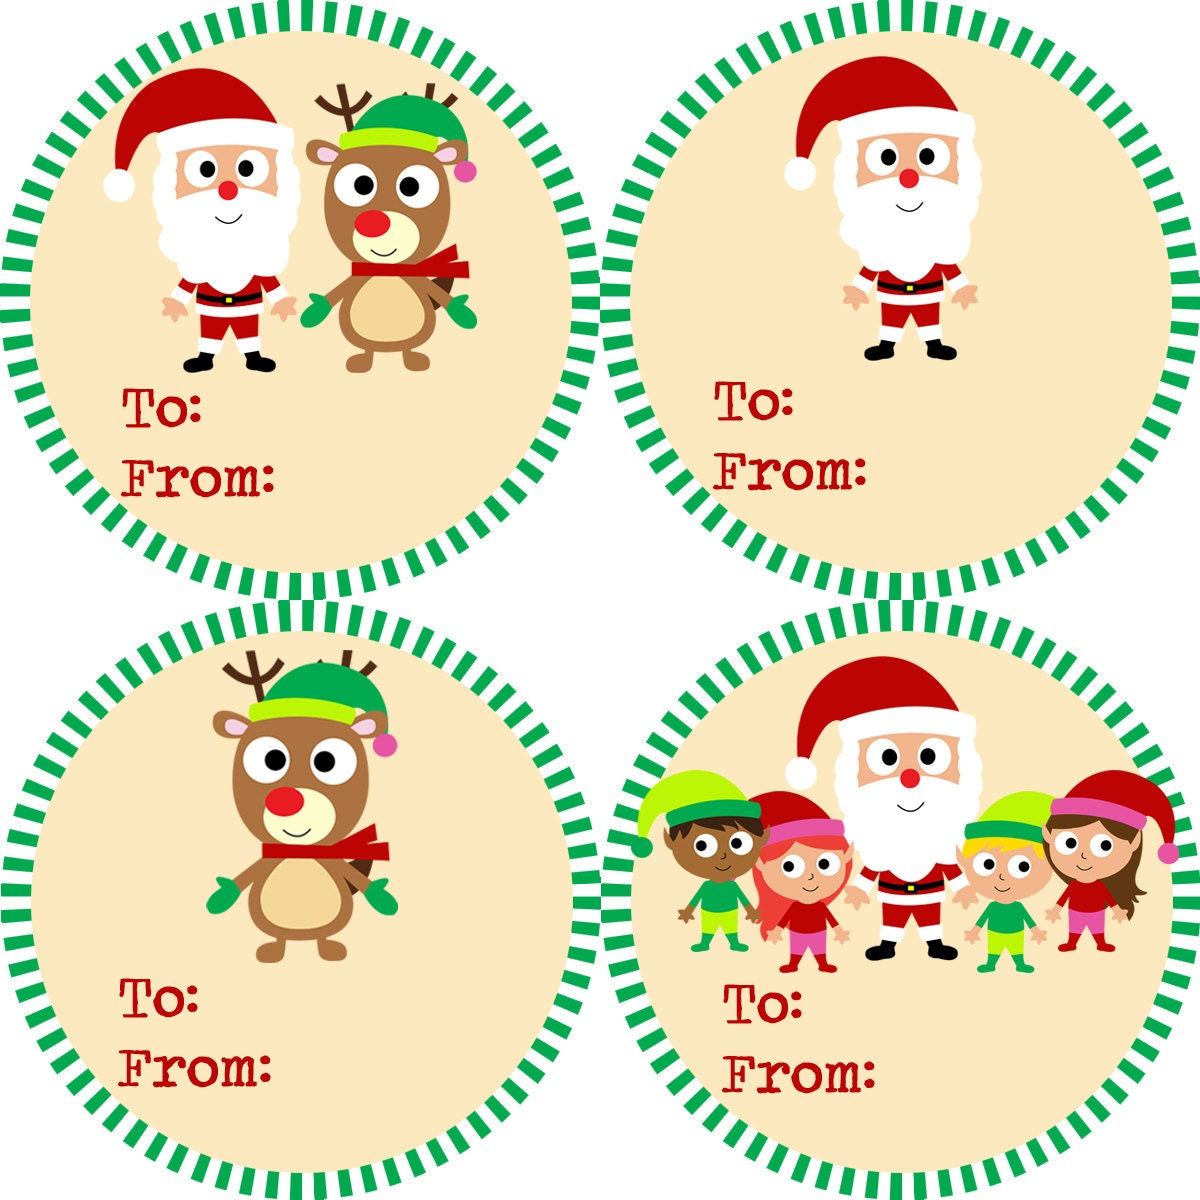 Christmas Gift Tag Stickers Green and Red Striped Santa | Etsy